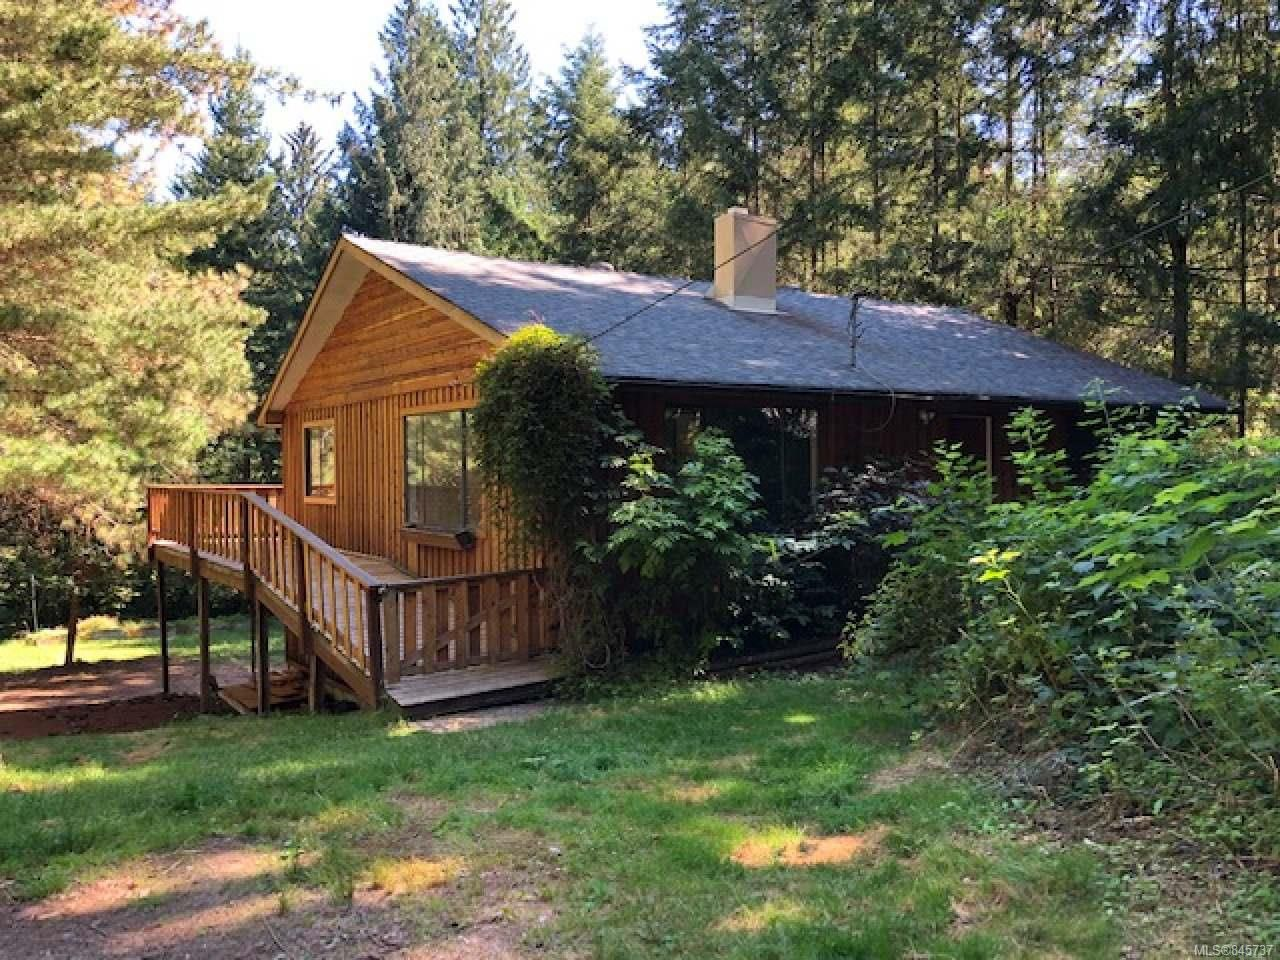 Main Photo: 3125 Rinvold Rd in QUALICUM BEACH: PQ Errington/Coombs/Hilliers House for sale (Parksville/Qualicum)  : MLS®# 845737